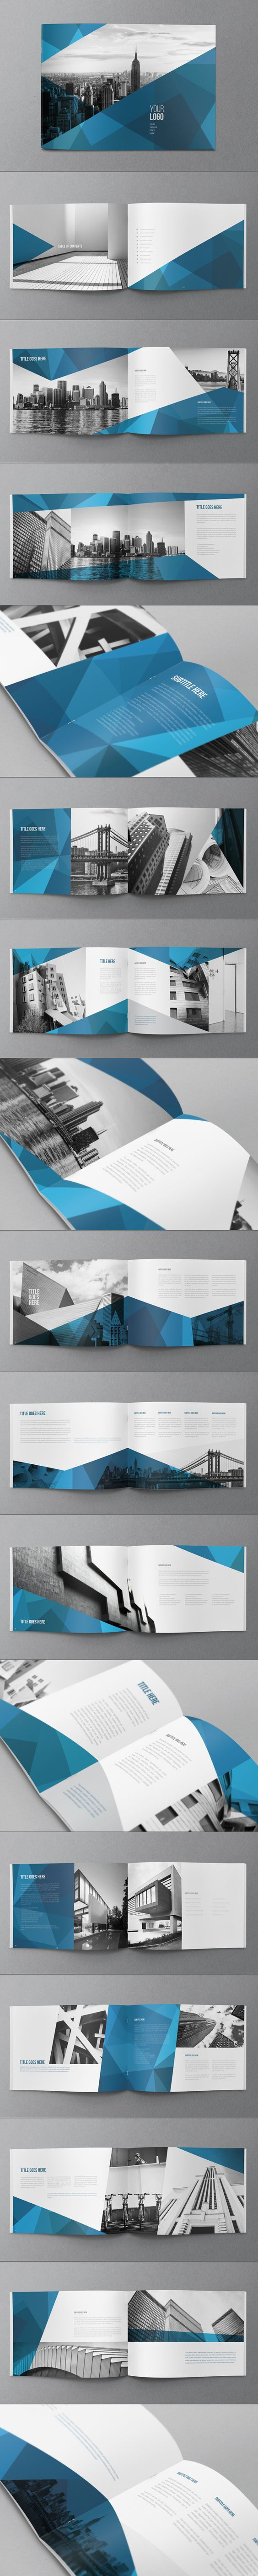 fractales triángulos Abstract Architecture Brochure. Download here: http://graphicriver.net/item/abstract-architecture-brochure/7385718?ref=abradesign #design #brochure